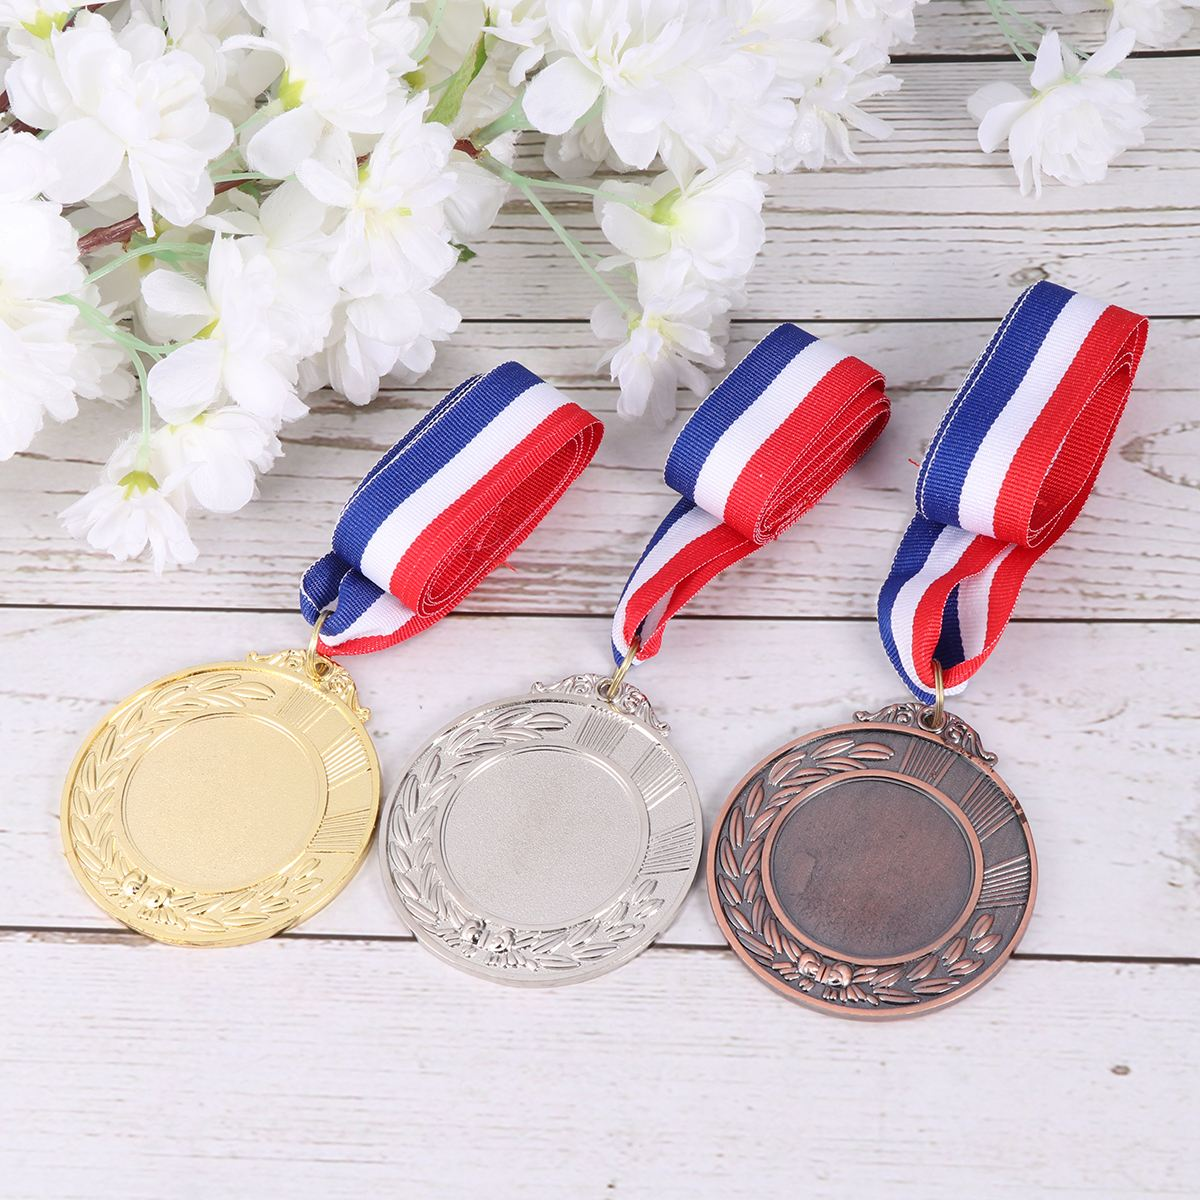 Metal Award Medals With Neck Ribbon Wheats Winner Medal For Sports Games Competition Championship Medal